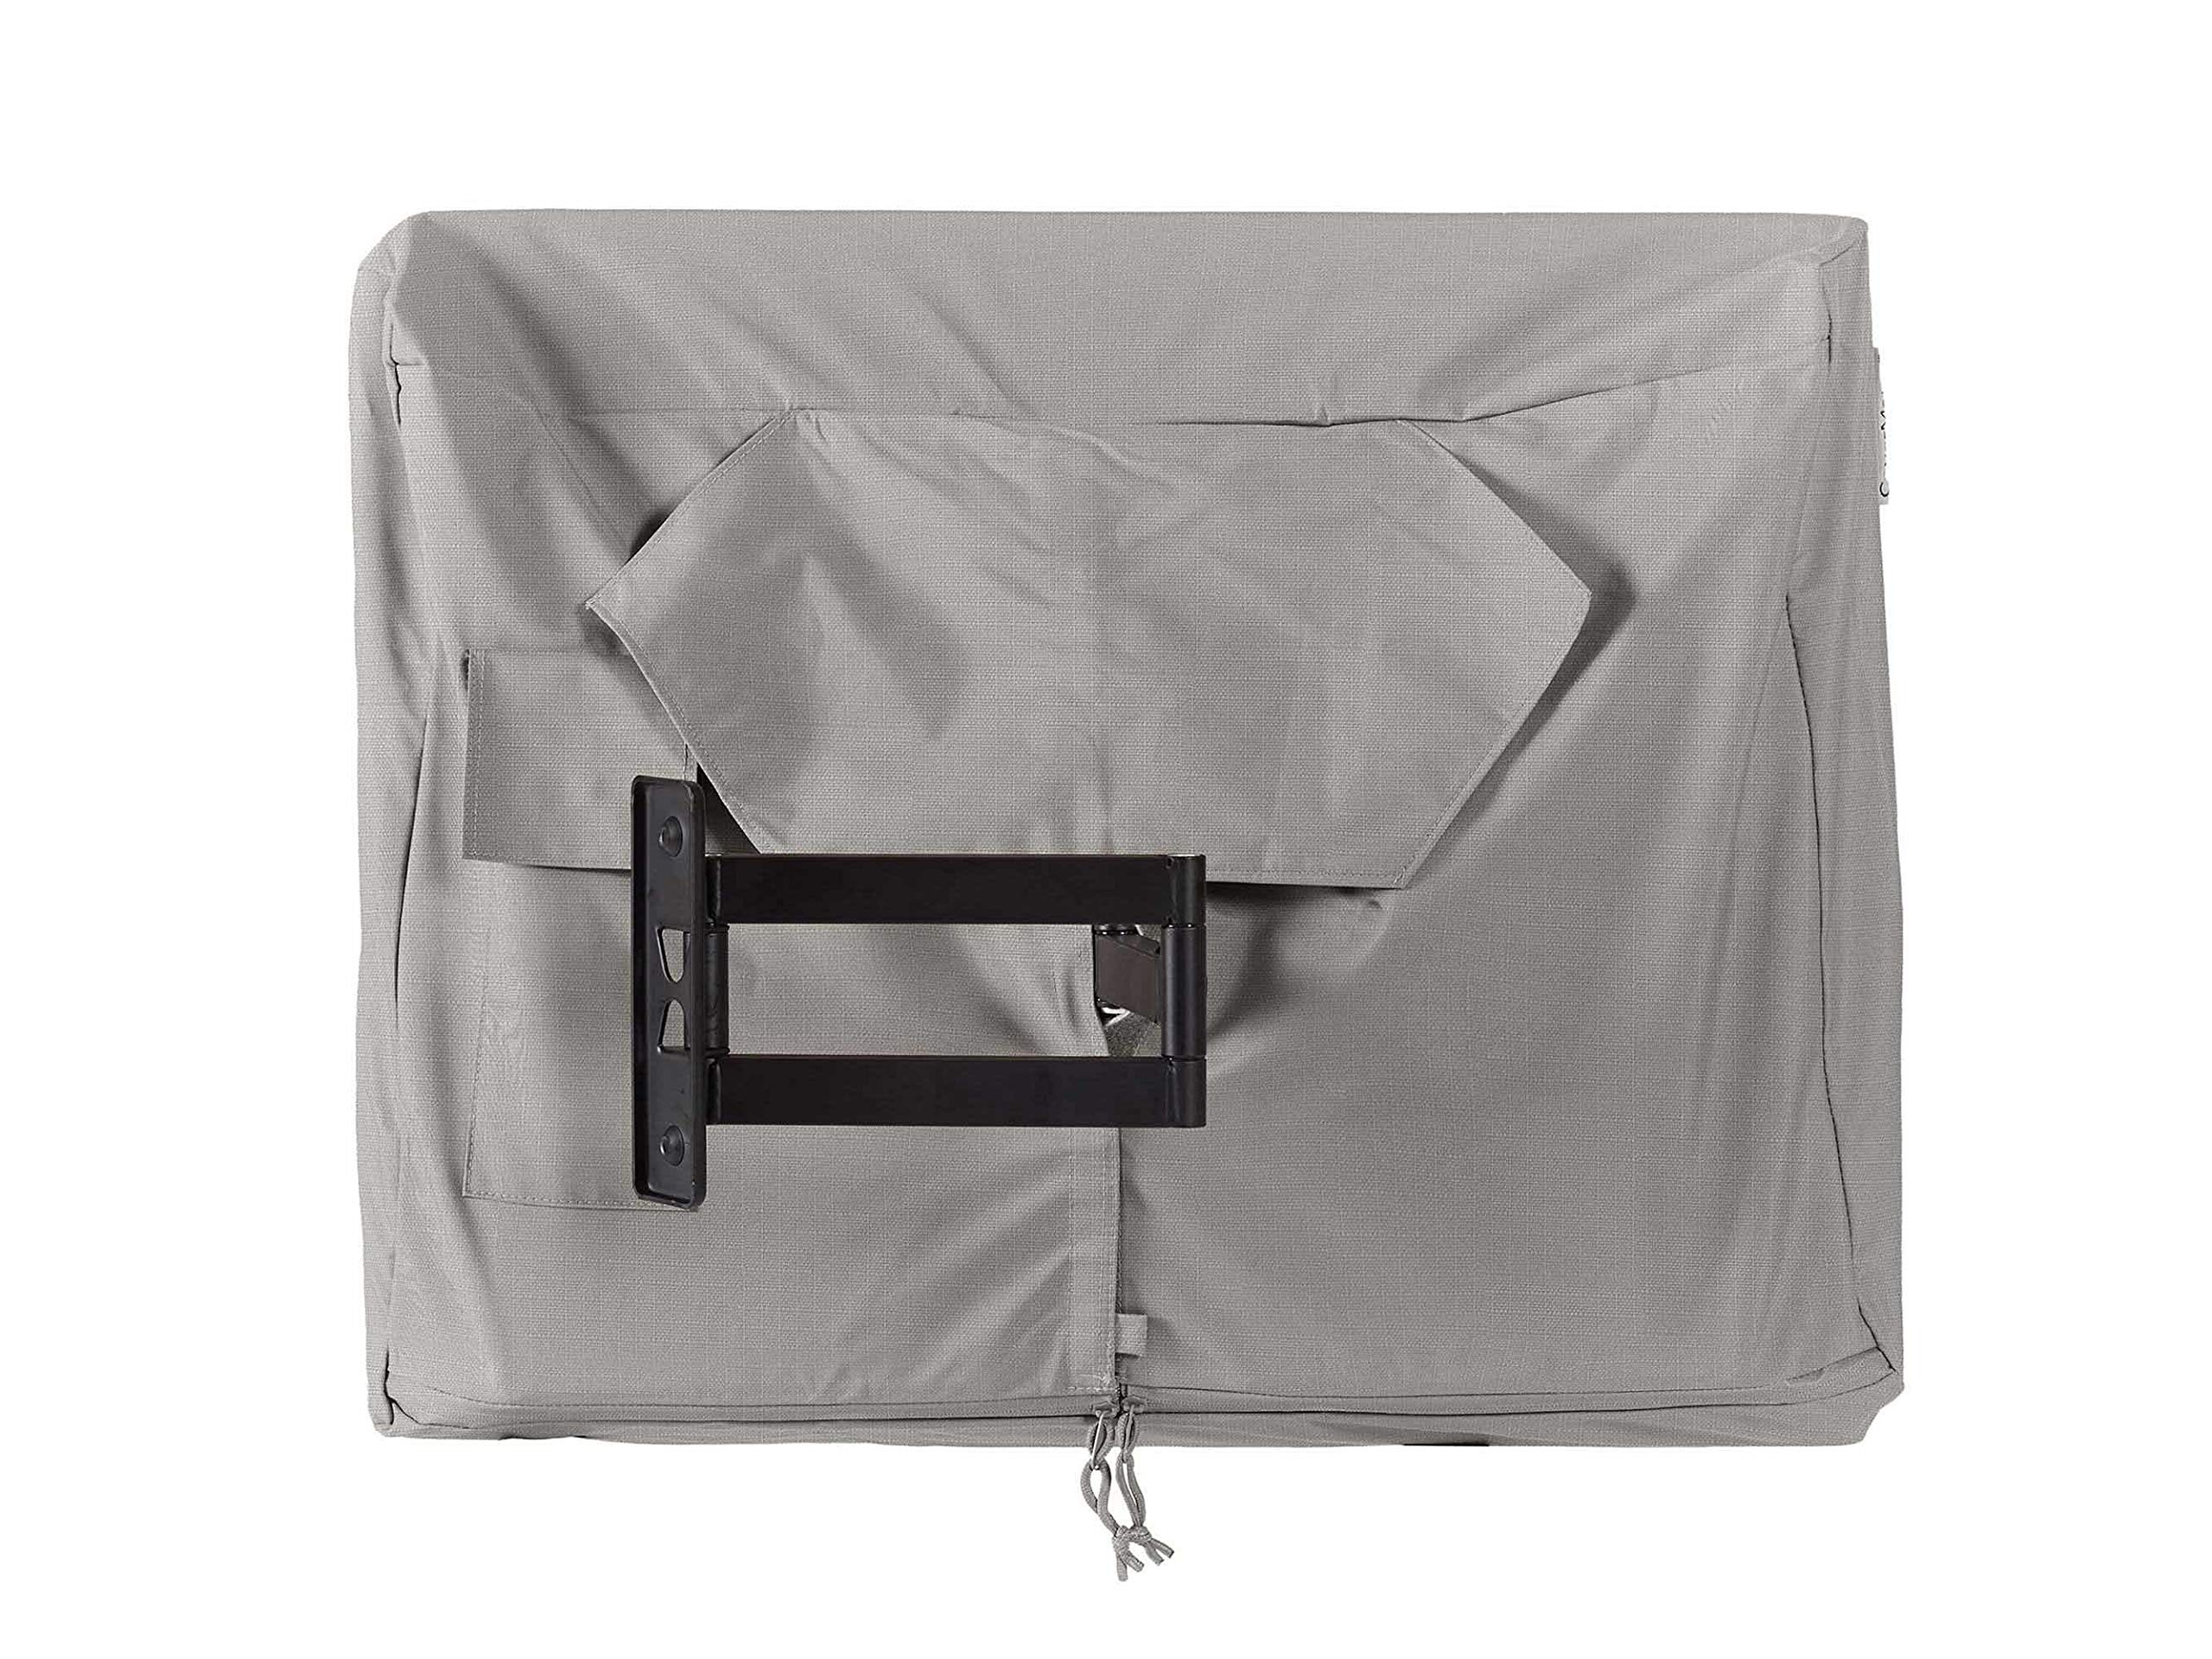 Covermates - Outdoor TV Cover - Fits 60 to 64 Inch TV's - Ultima - 600 Denier Fade Resistant Polyester - Full Coverage - Interior Fleece Lining - 7 YR Warranty - Water Resistant - Ripstop Grey by Covermates